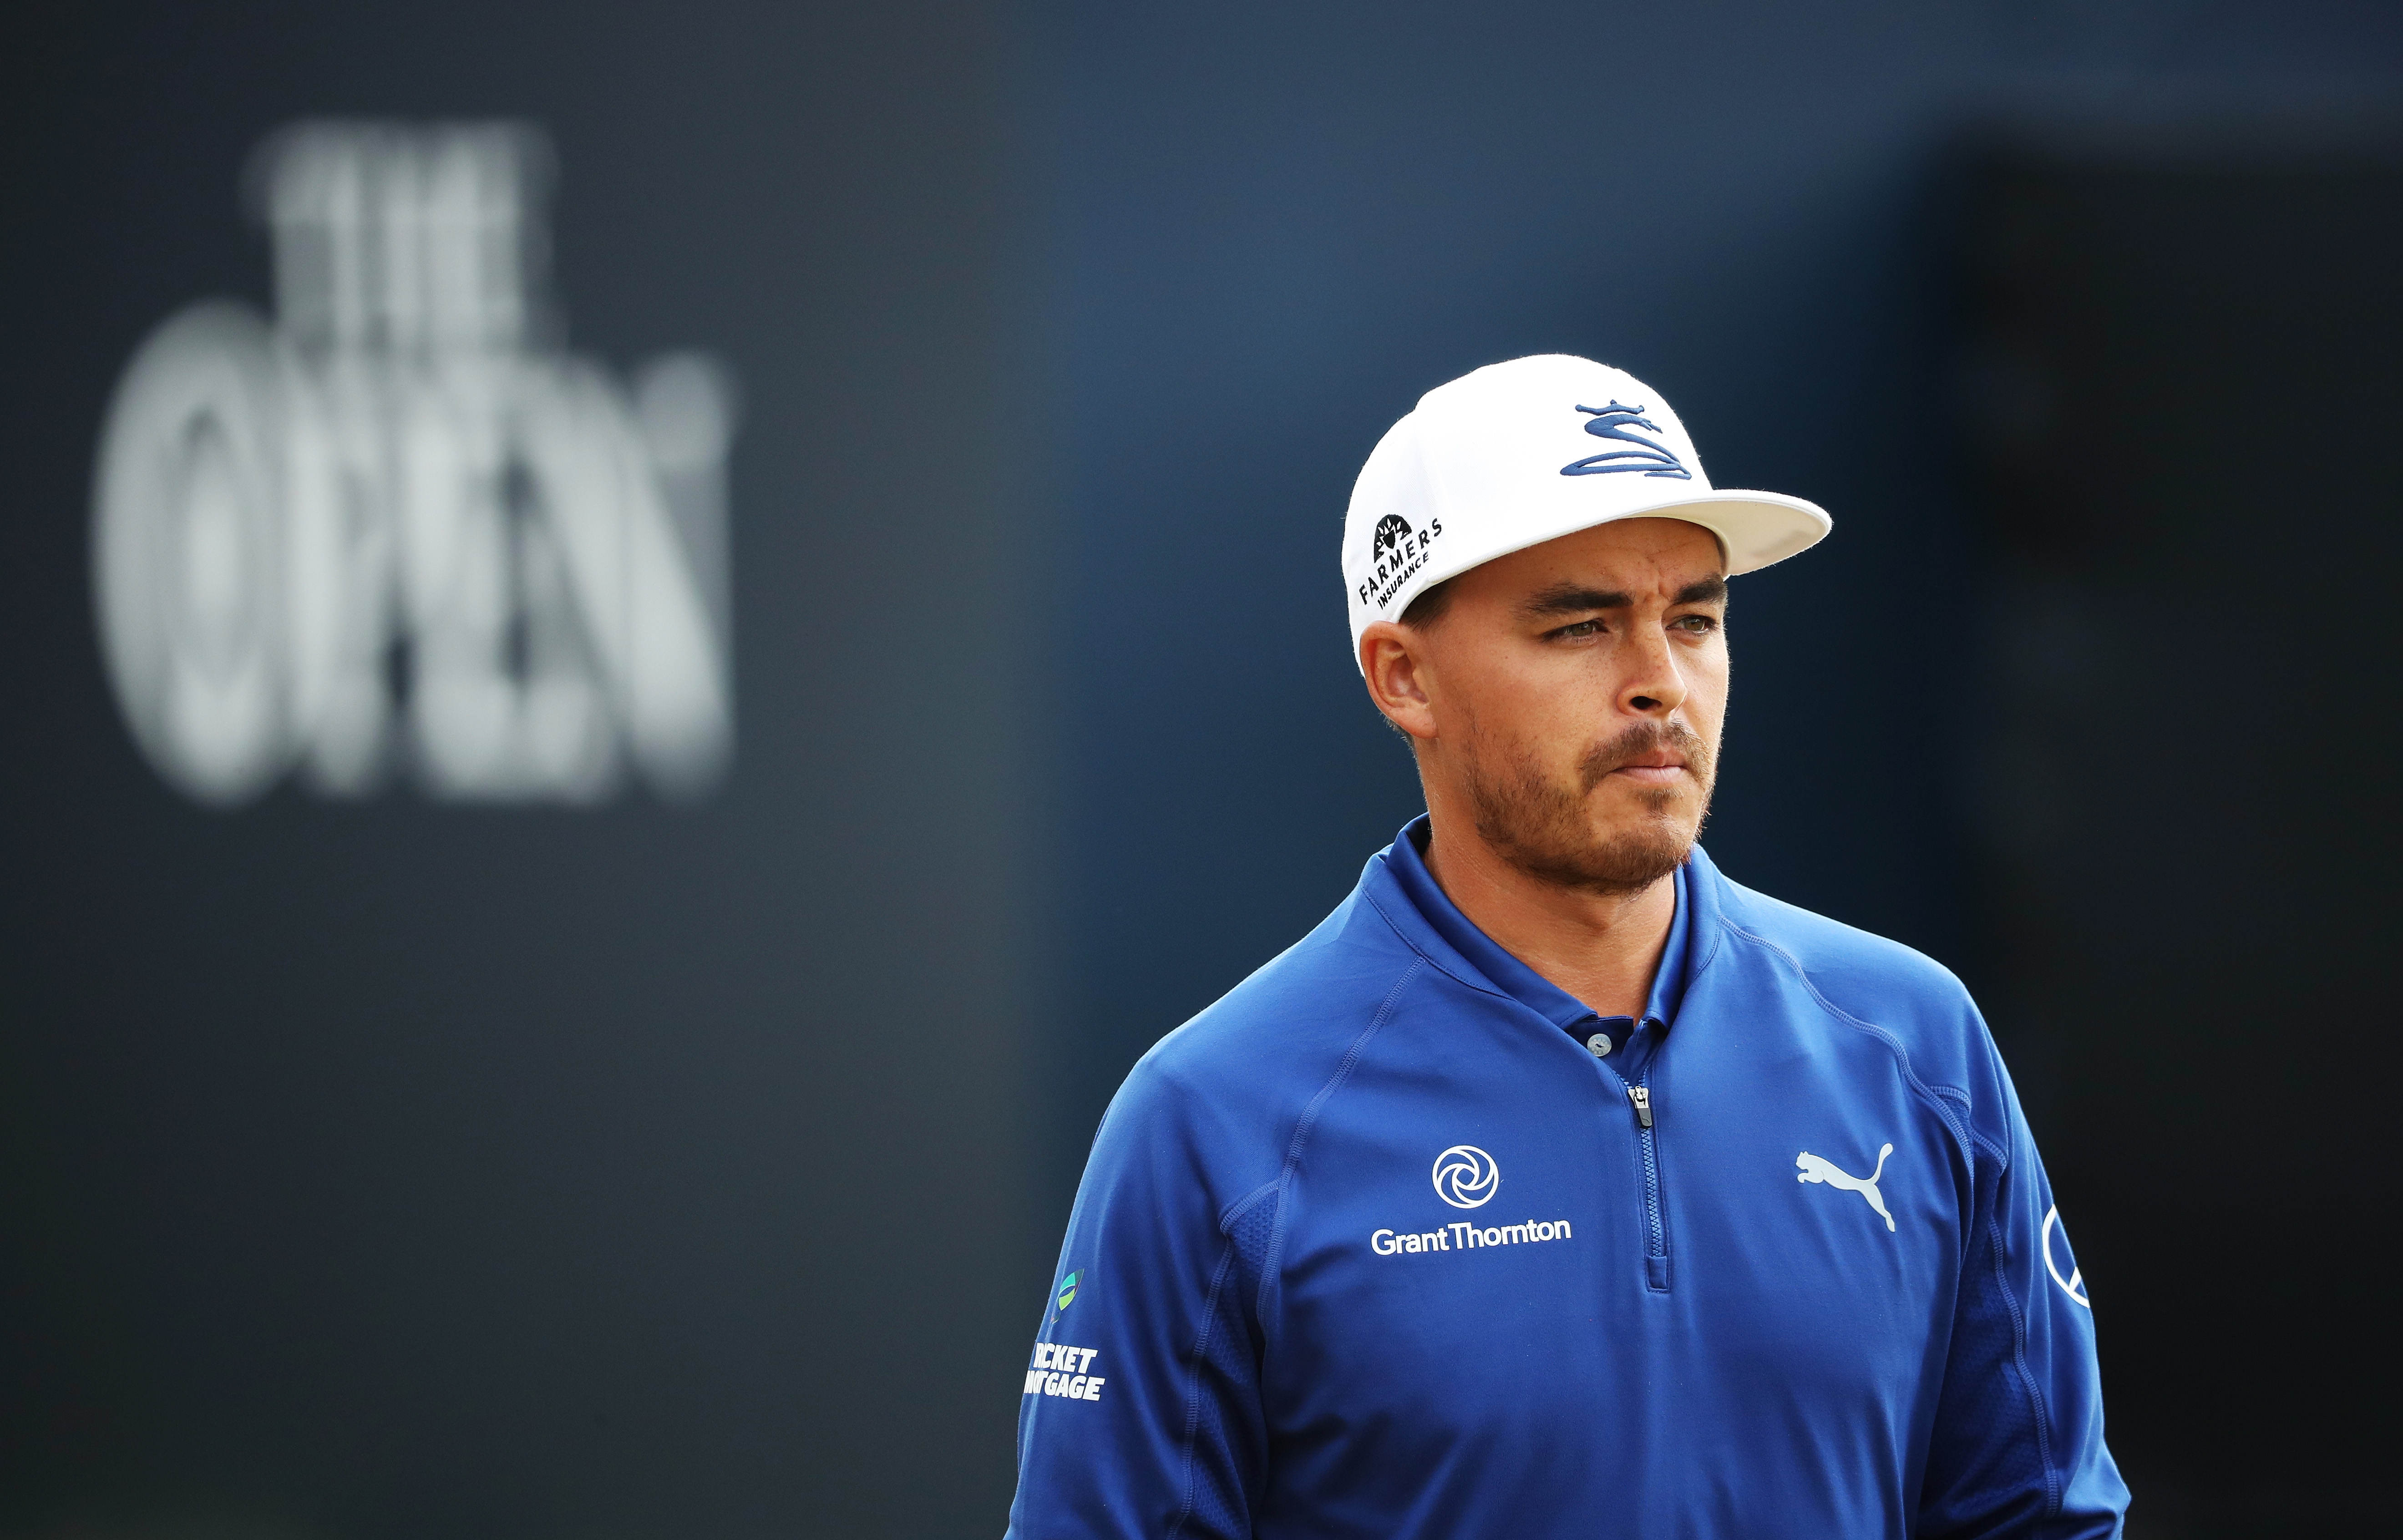 WINNER REVEALED! Rickie Fowler's limited edition Open stand bag